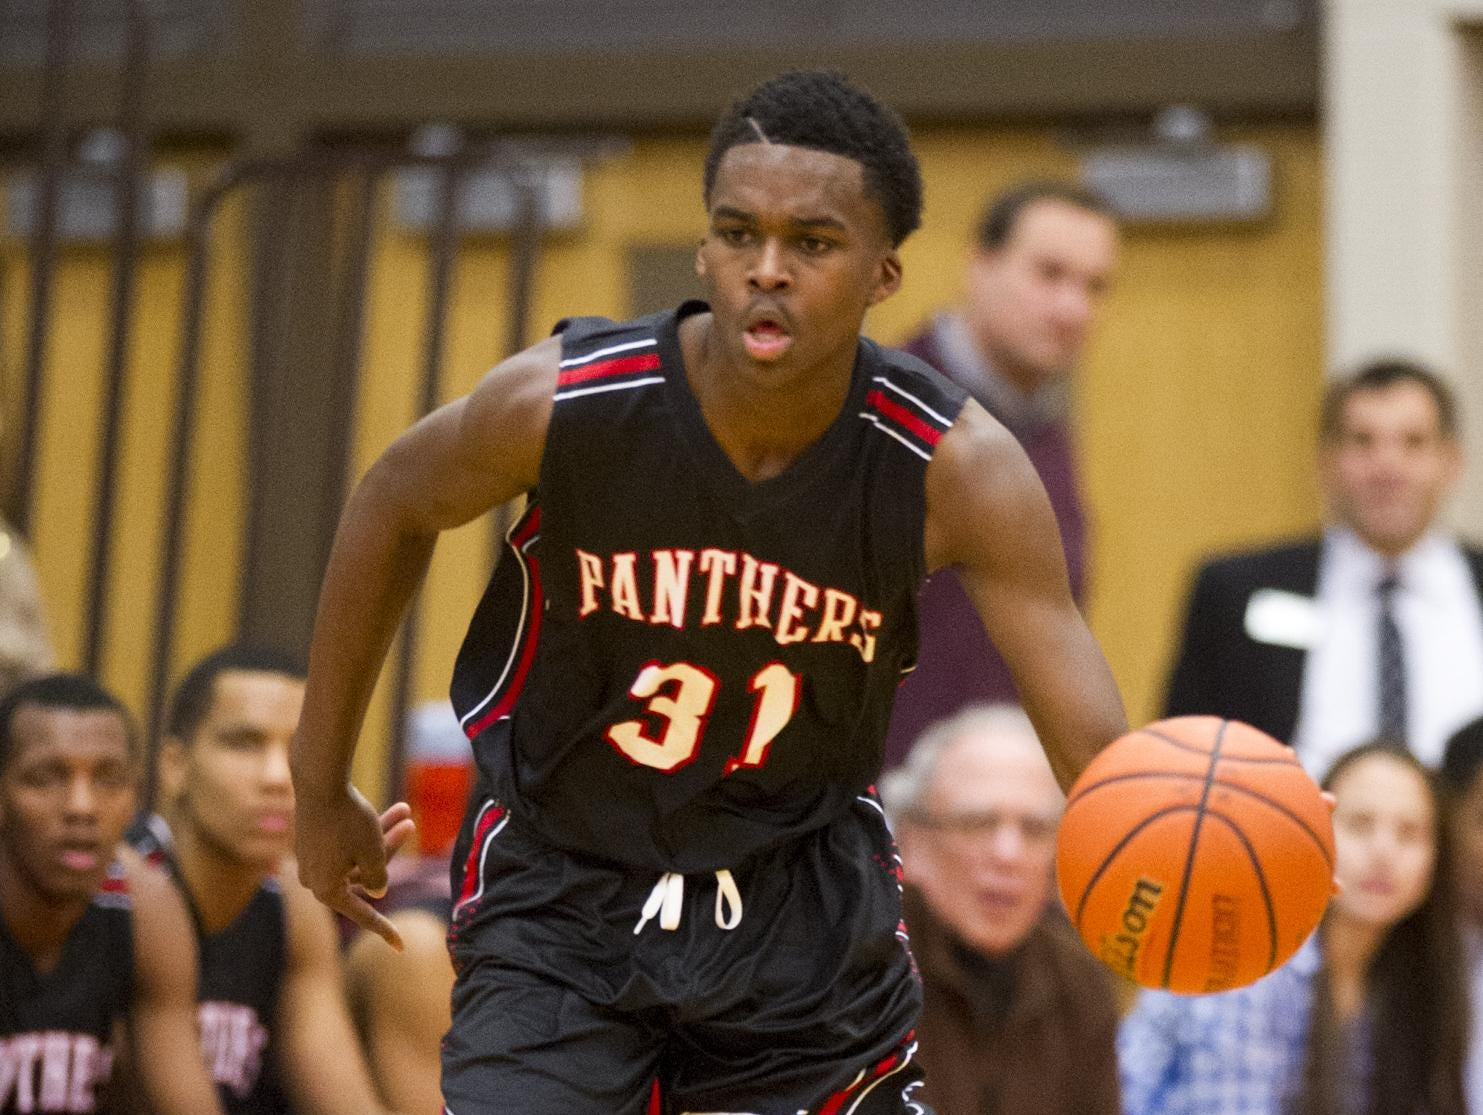 North Central's Kris Wilkes brings the ball upcourt Jan. 13 at the county tourney.